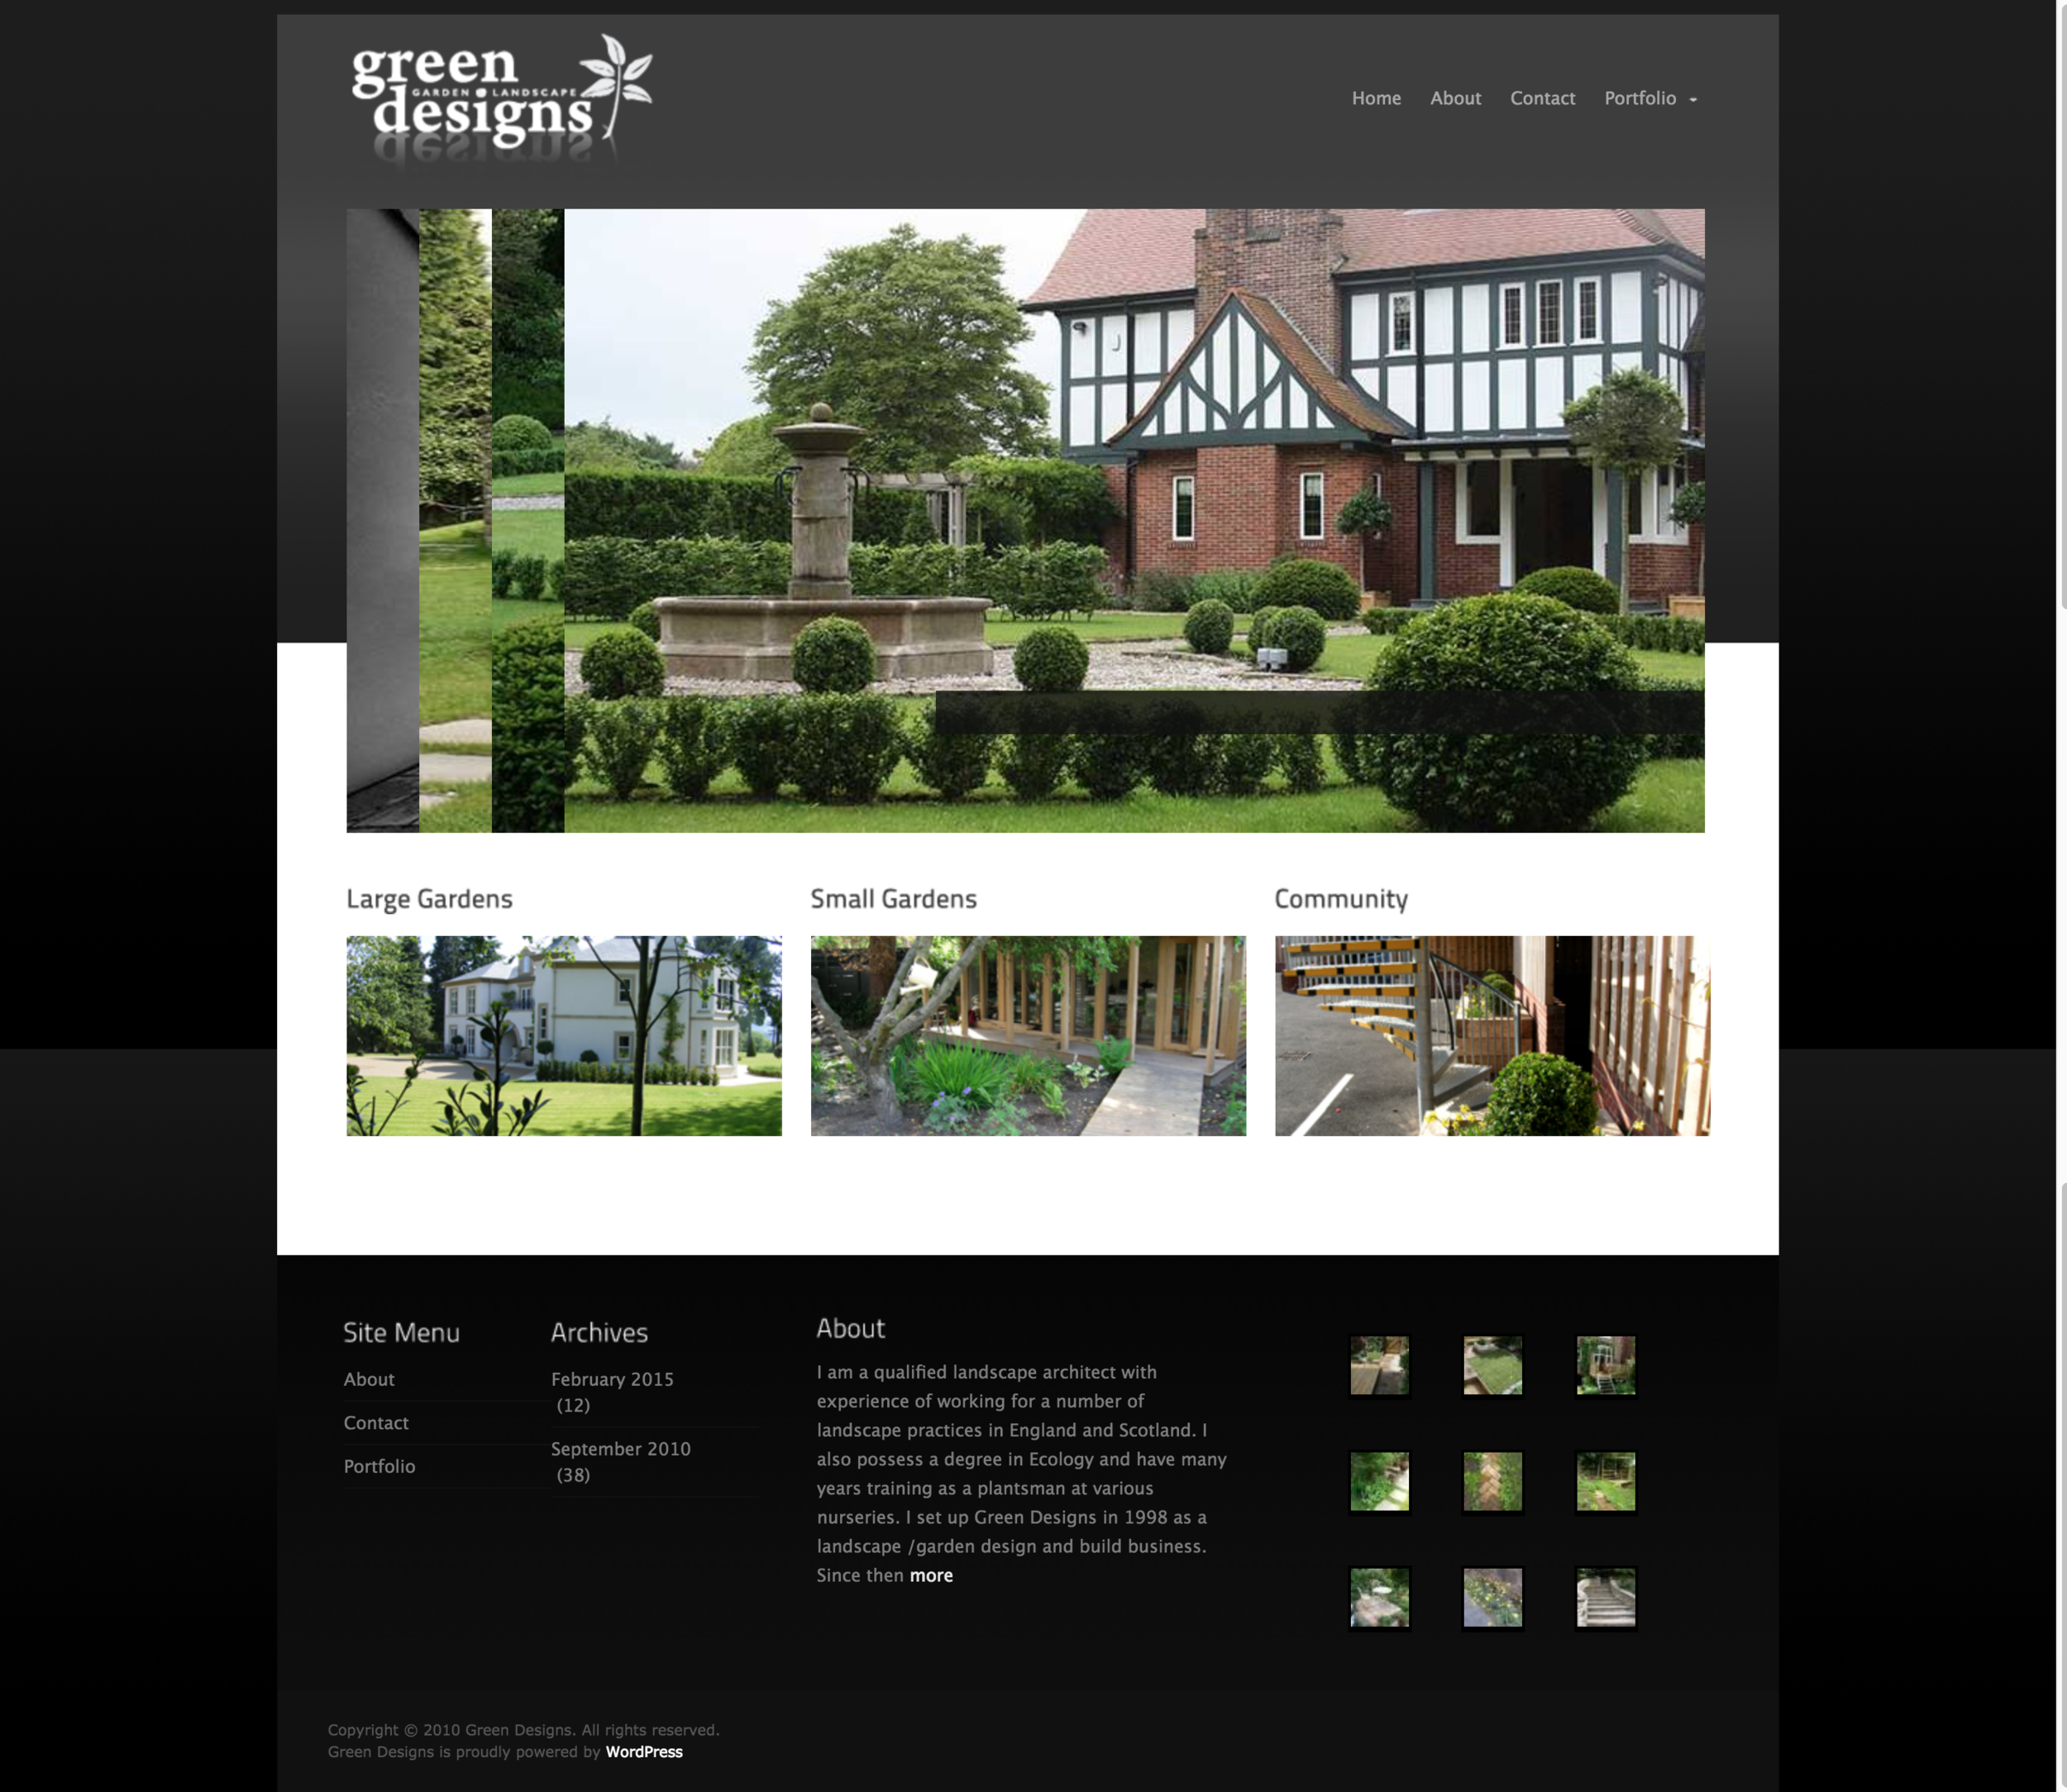 green-designs-home.png